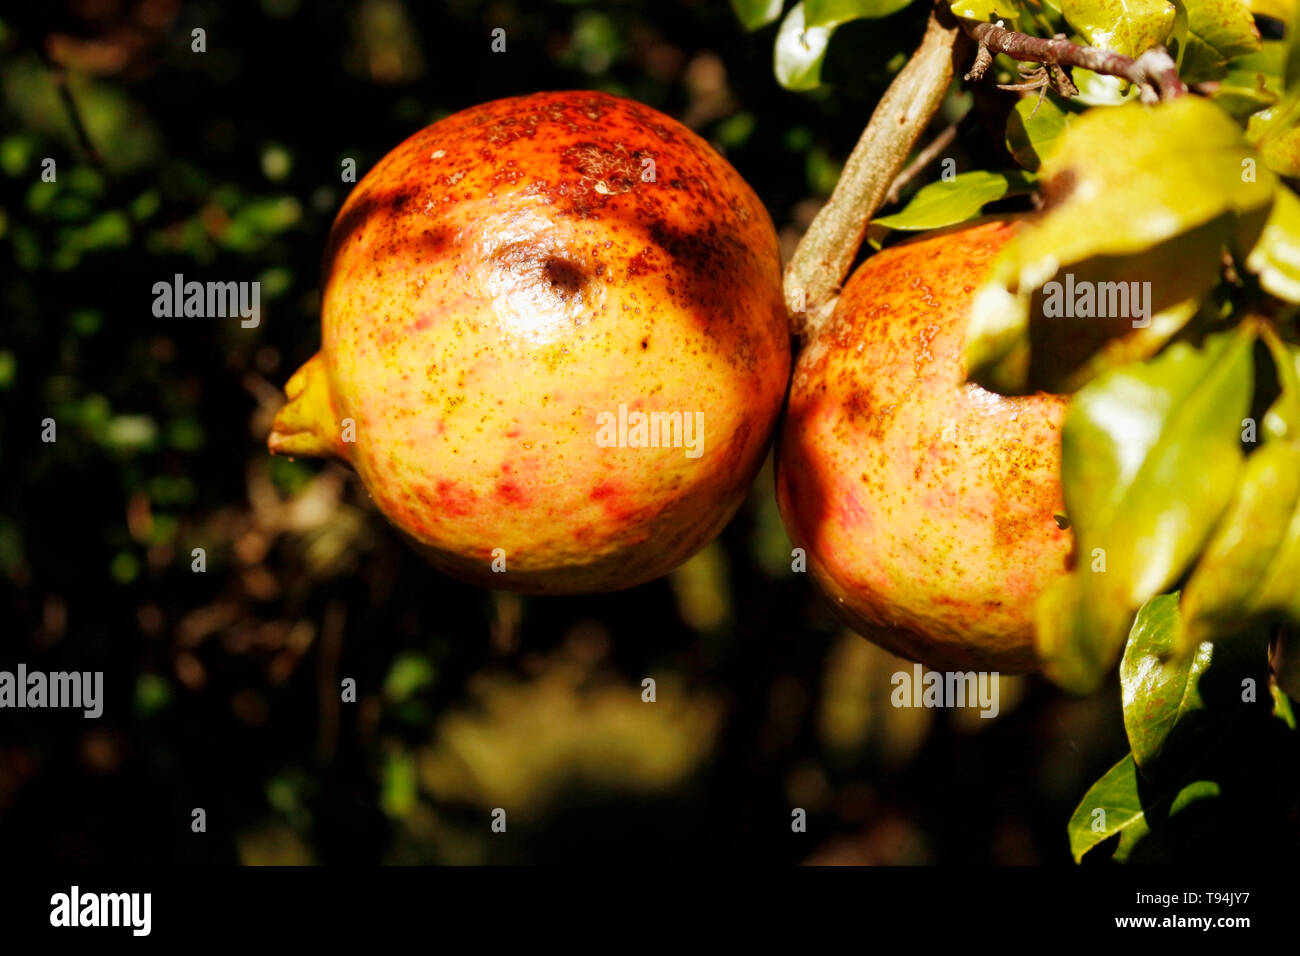 Two fruits of Pomegranate, still on the foot. Besides being beautiful, these fruits have very healthy characteristics. - Stock Image